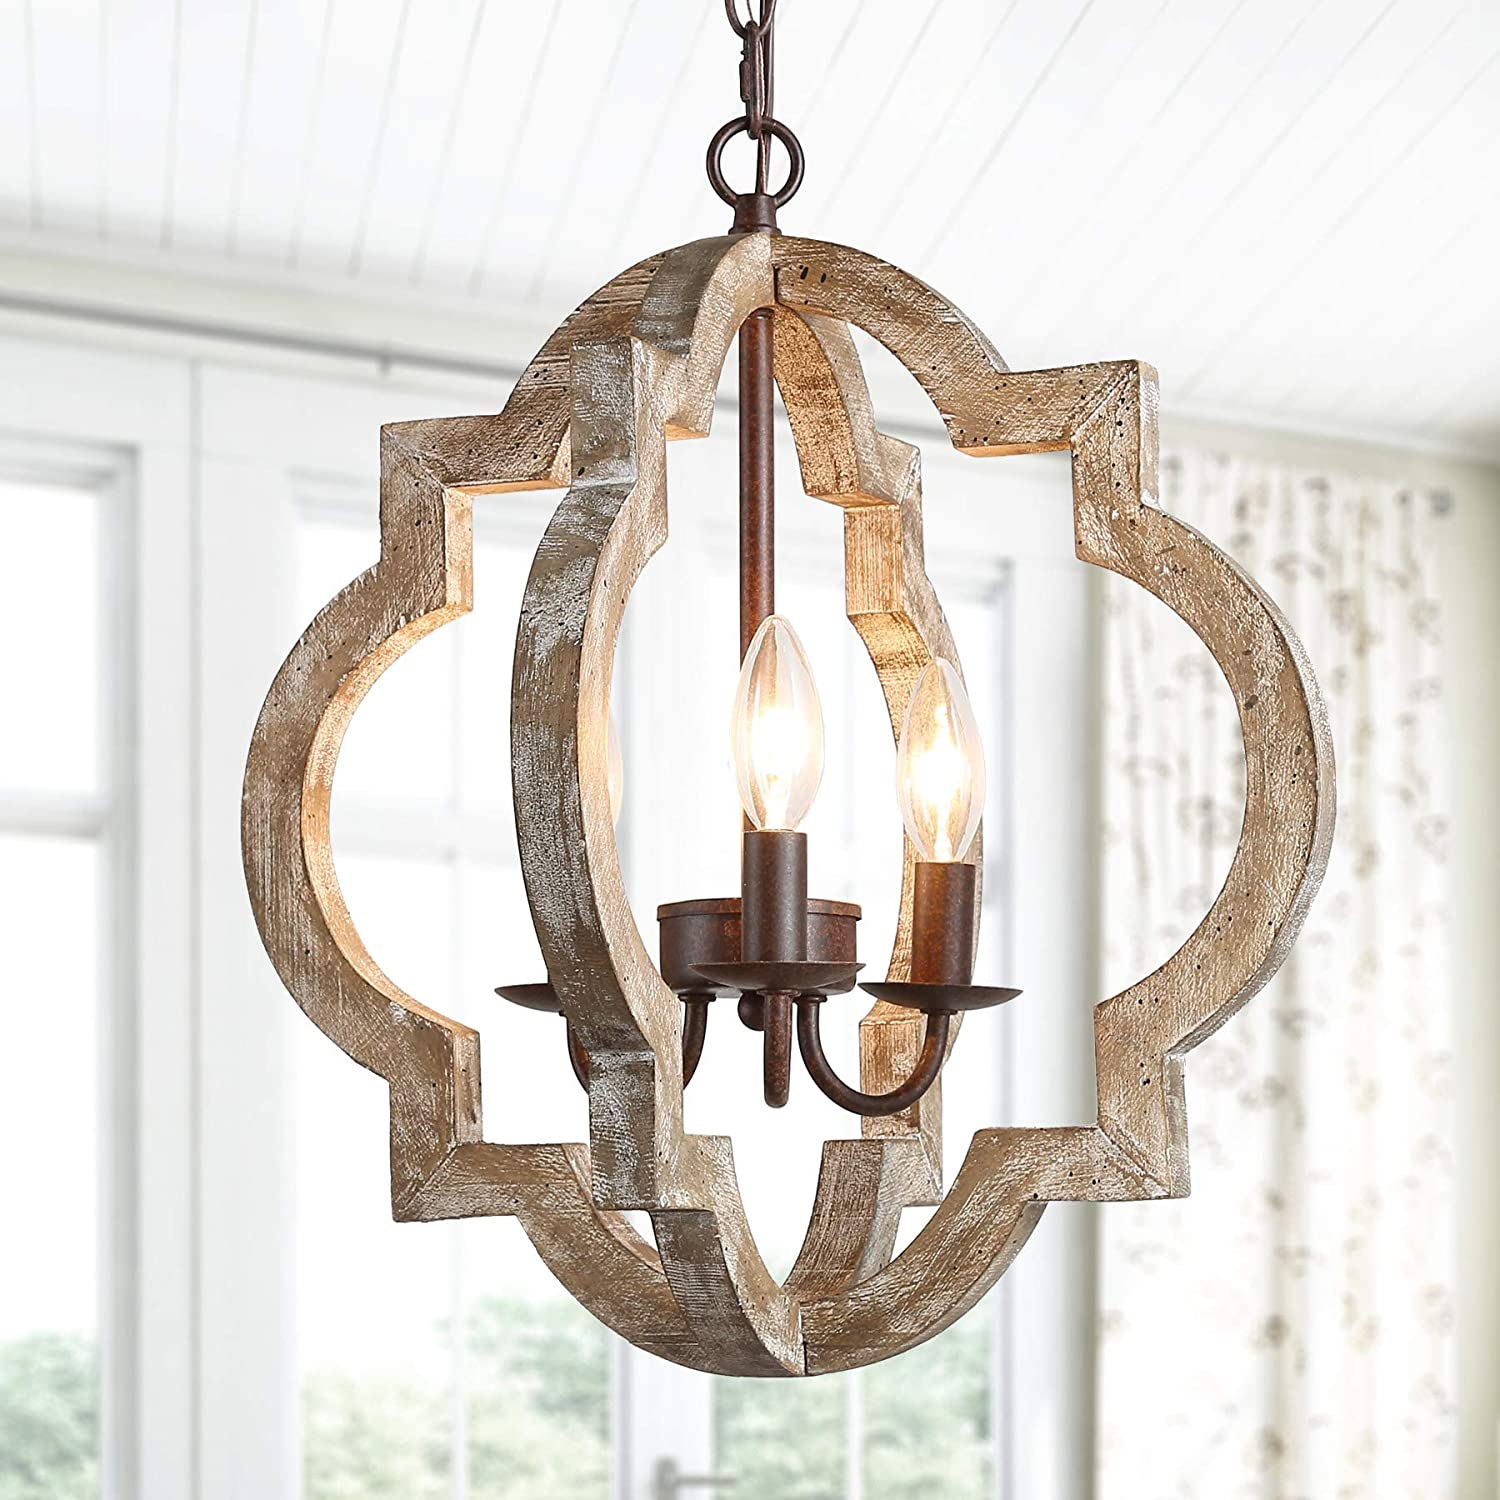 Ksana Farmhouse Orb Chandelier Handmade Wood Light Fixture For Dining Living Room Foyer Bedroom Kitchen Island And Entryway Amazon Com